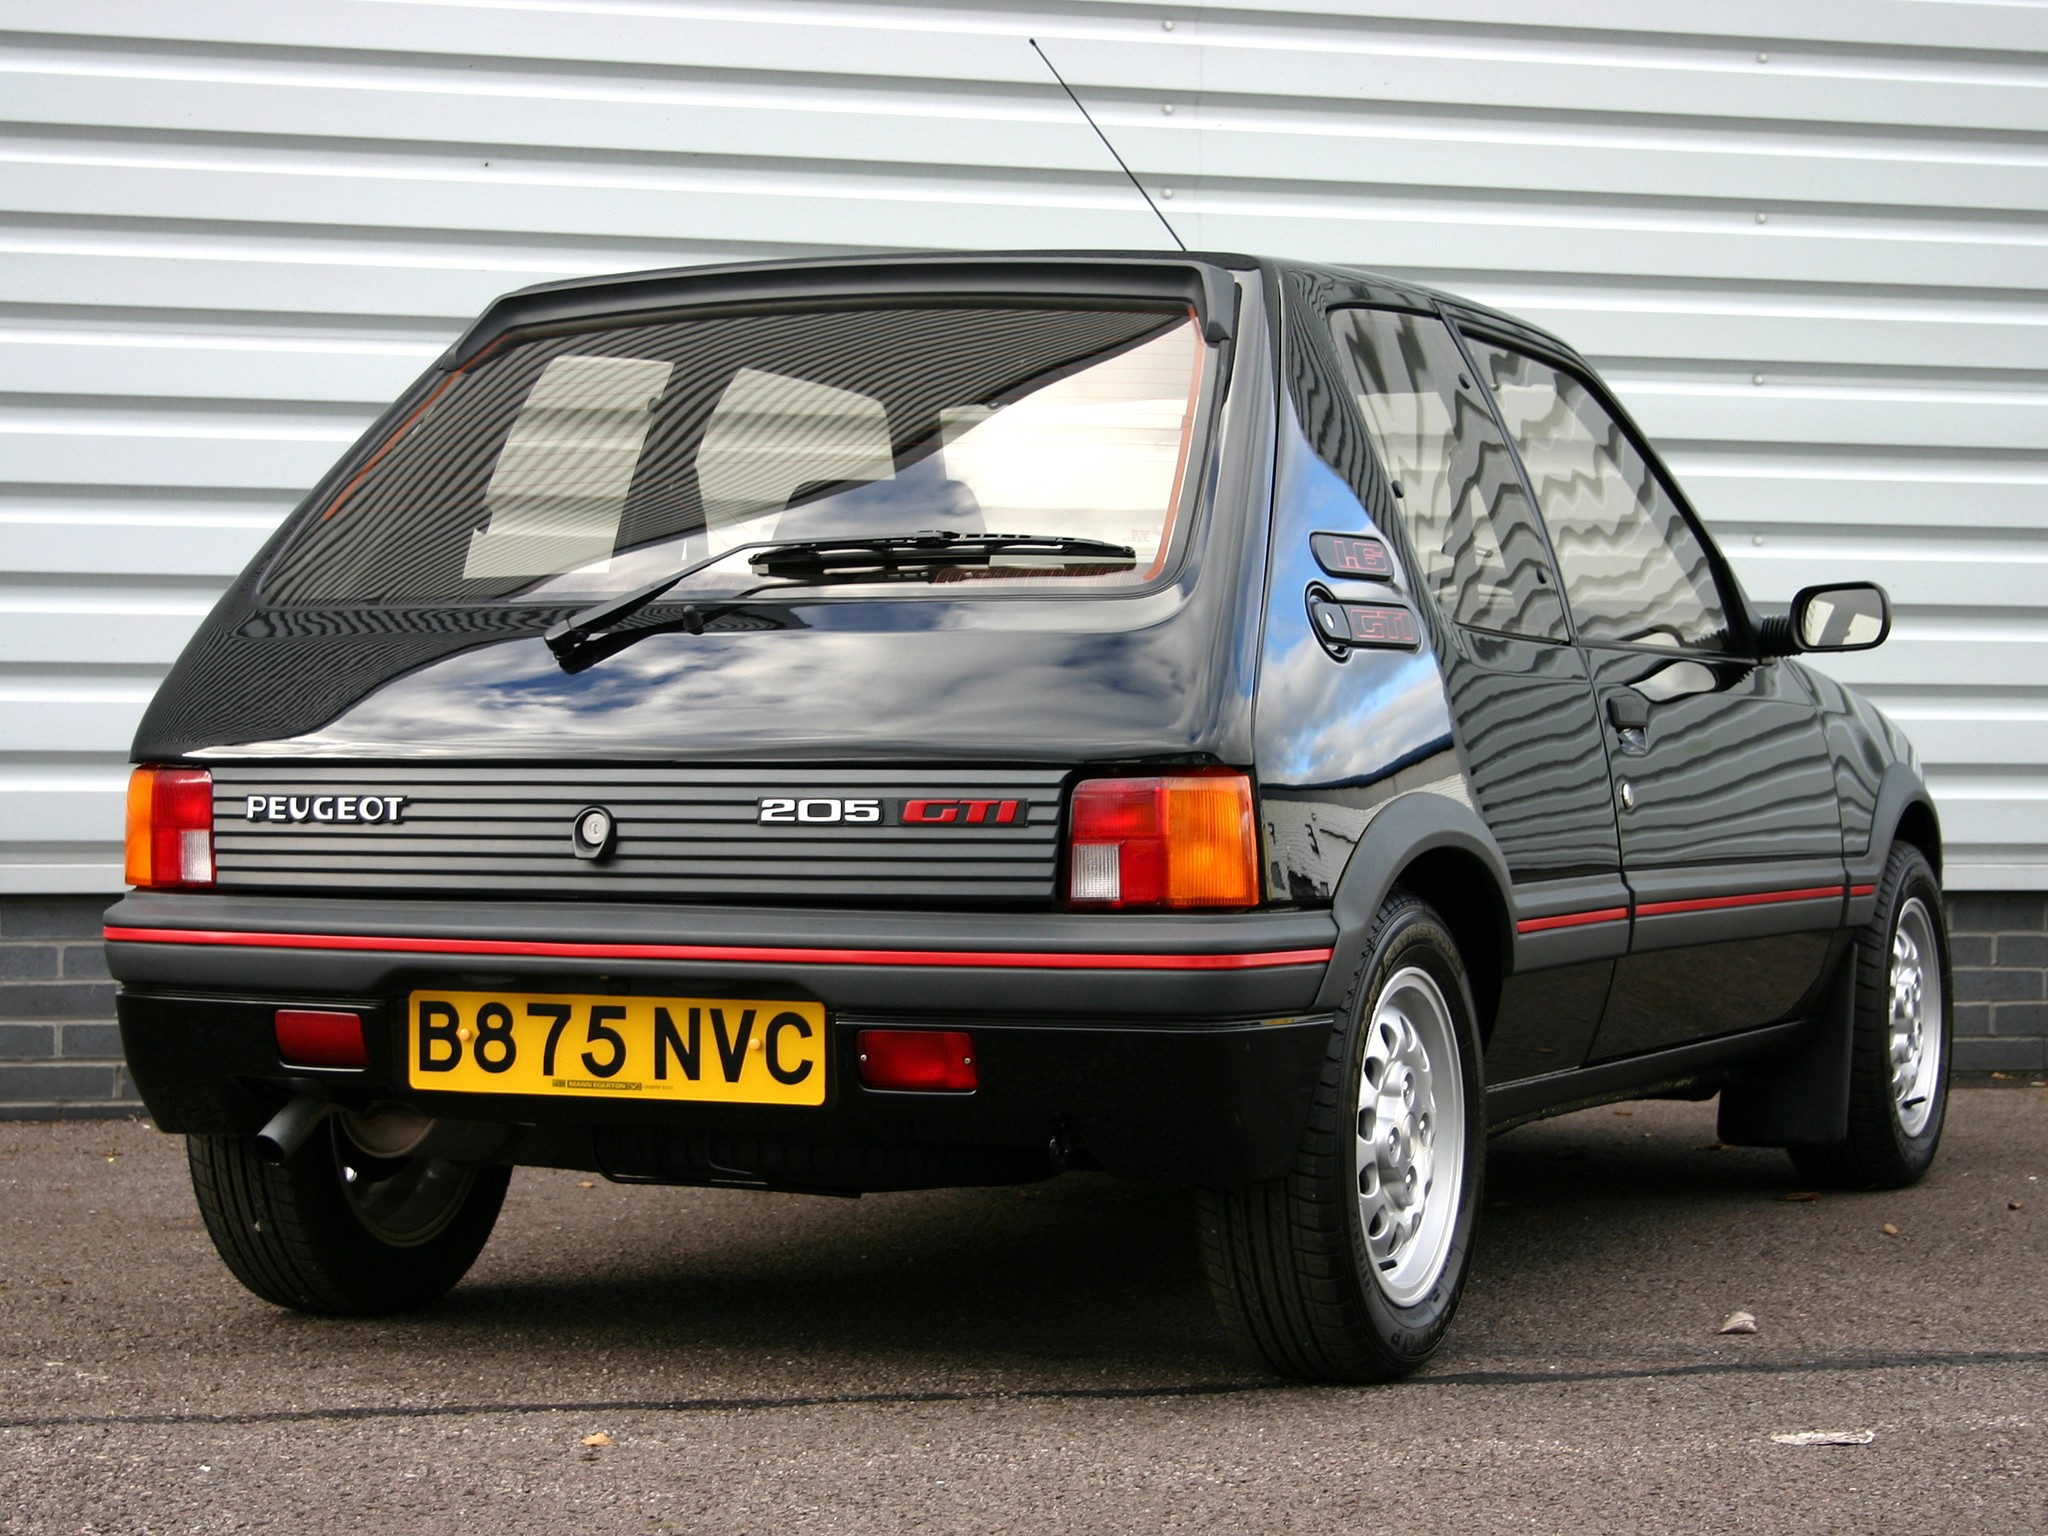 peugeot 205 gti specs 1984 1985 1986 1987 1988 1989 1990 1991 1992 1993 1994. Black Bedroom Furniture Sets. Home Design Ideas